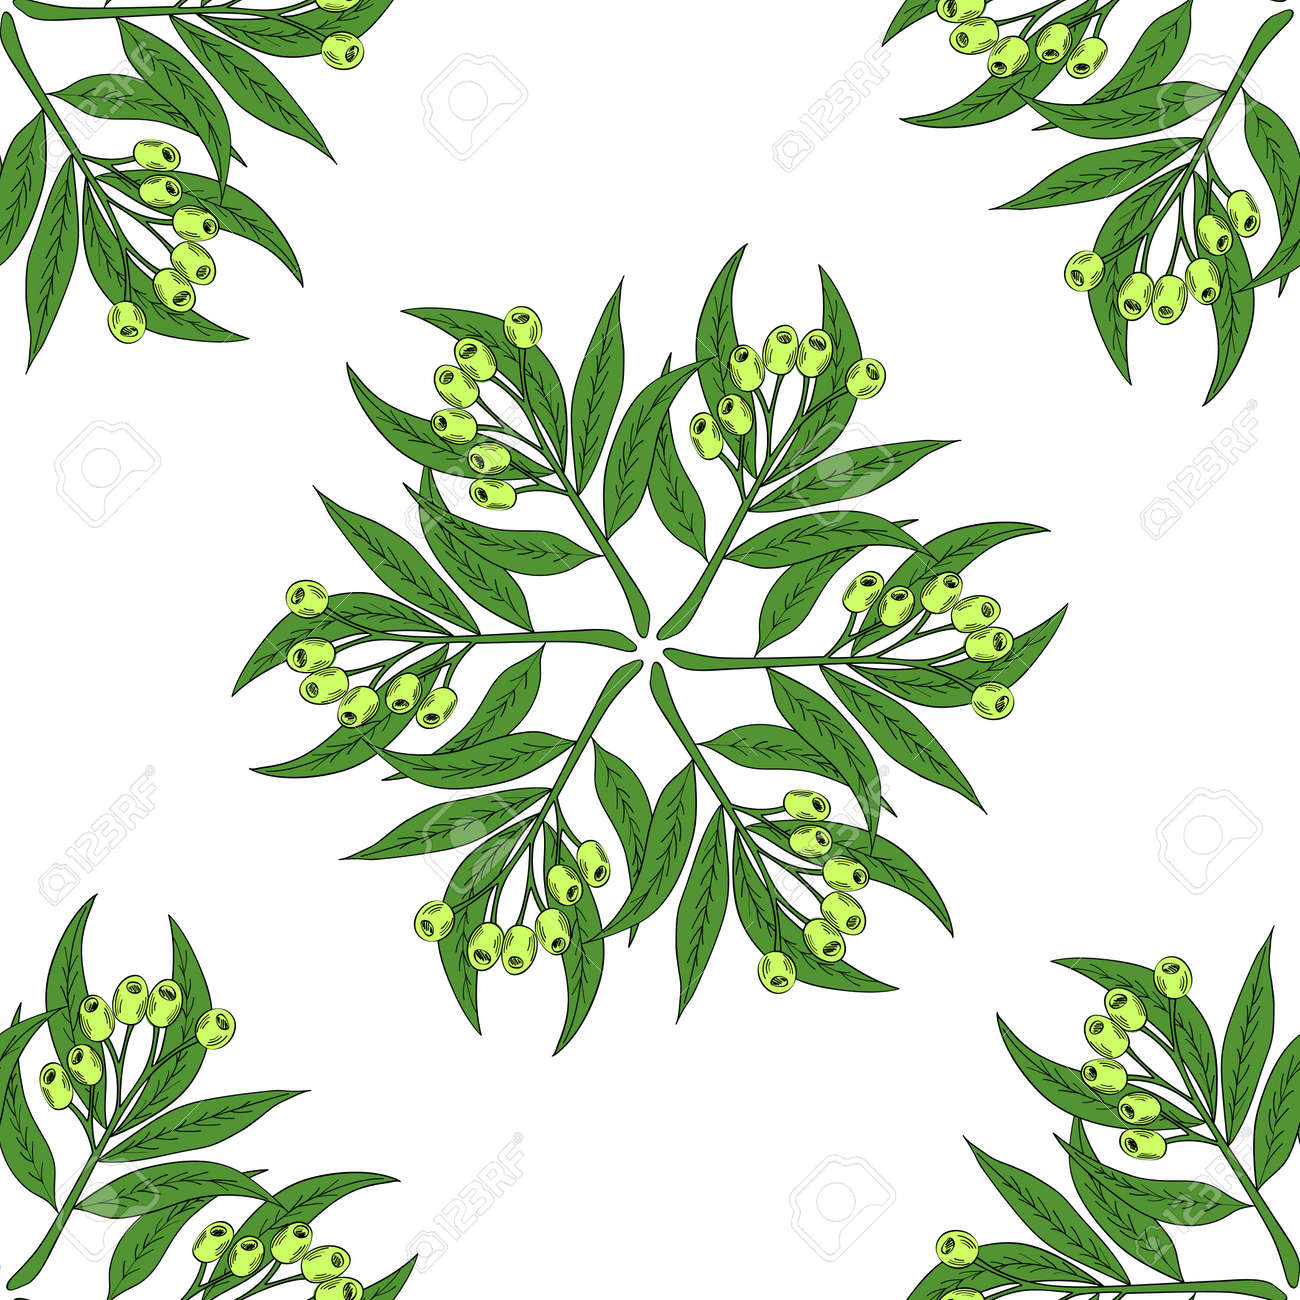 Hand Drawn Eucalyptus Leaves And Fruits Eucalyptus Plant Branch Royalty Free Cliparts Vectors And Stock Illustration Image 78018546